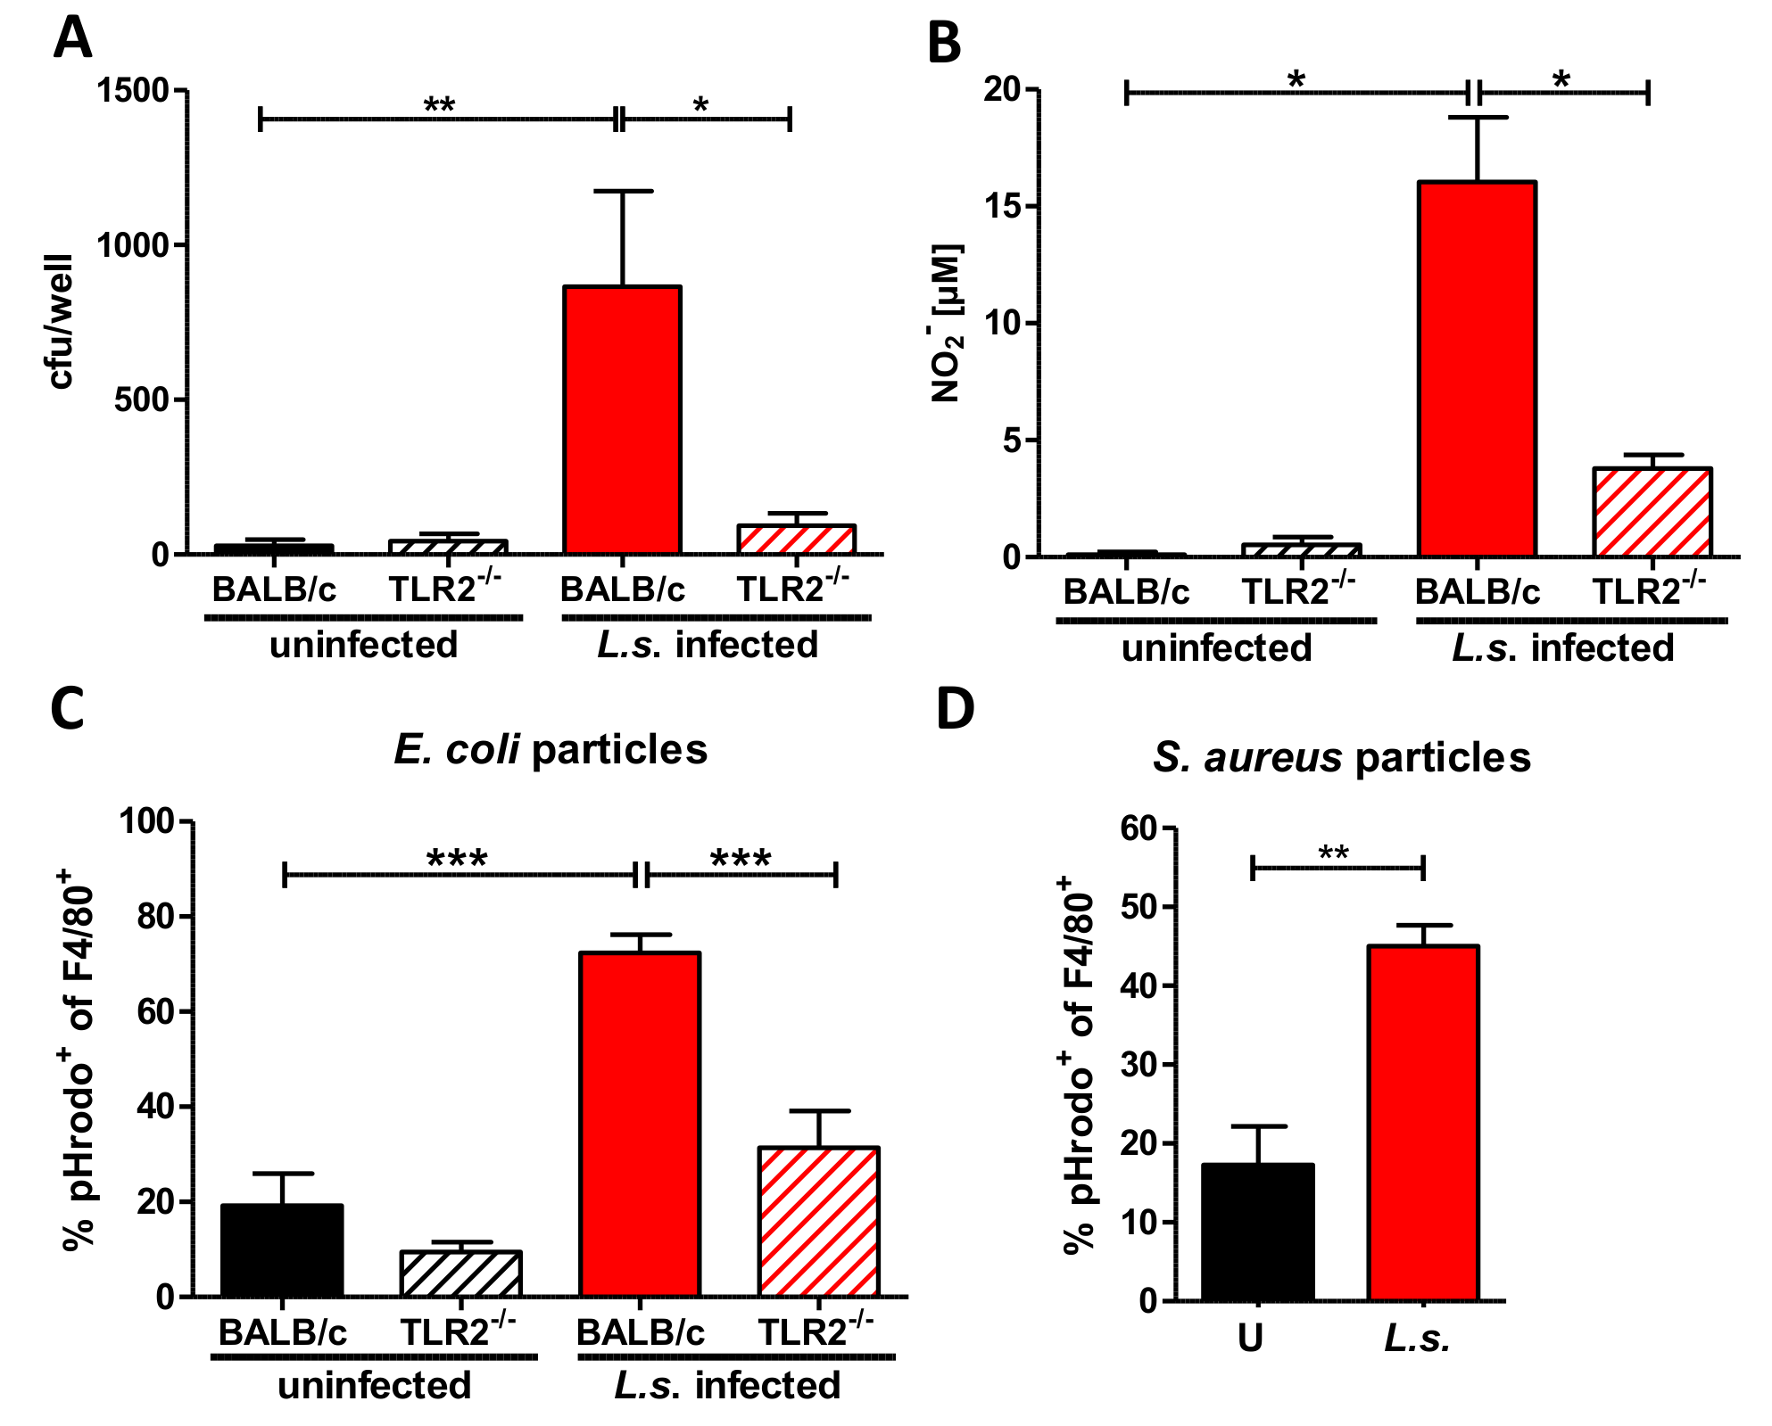 Anti-bacterial effector mechanisms are enhanced by <i>L. sigmodontis</i> infection in a TLR2 dependent manner.